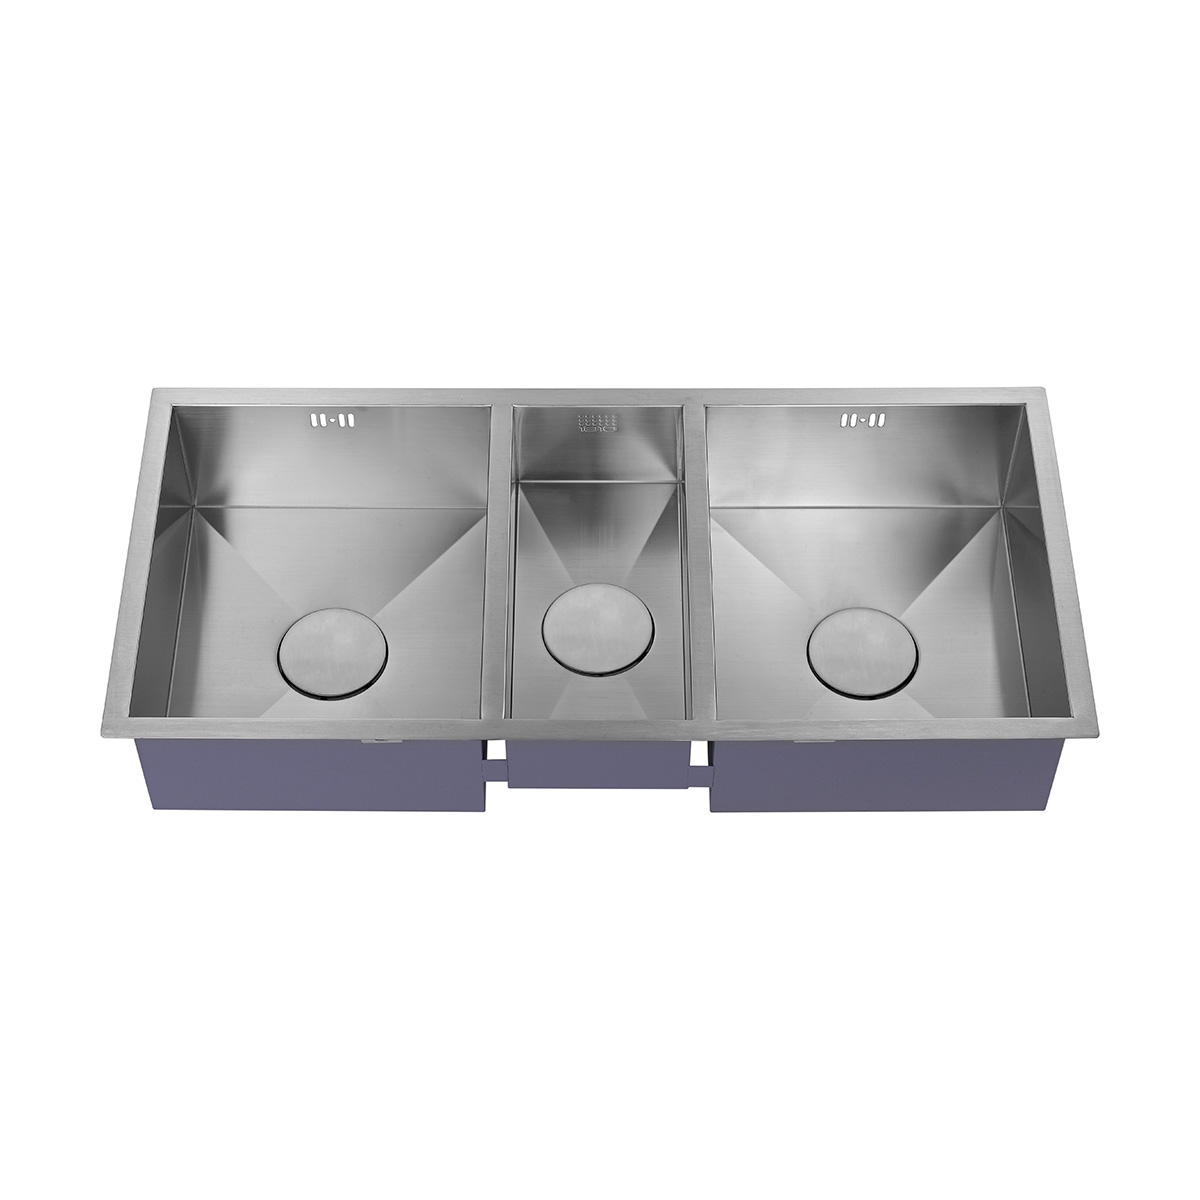 1810 company zentrio 2 5 bowl kitchen sink sinks for The kitchen sink company